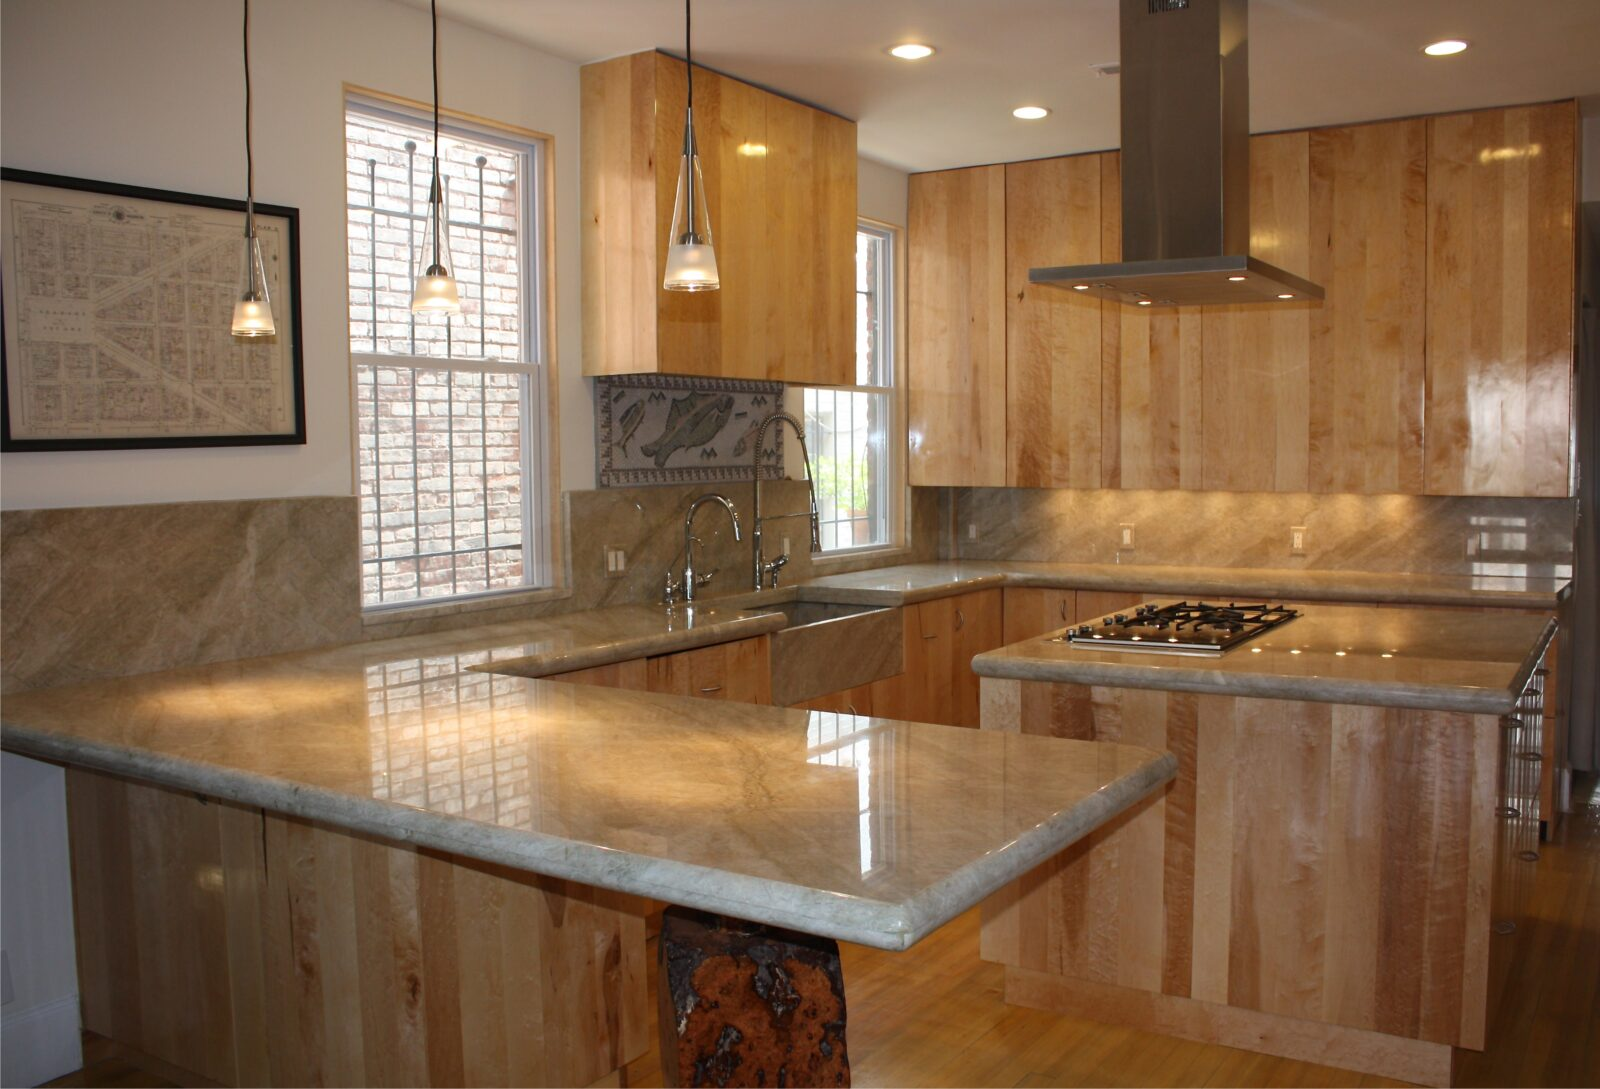 laminate kitchen refacing resurfacing counter best countertops phoenix bathroom resurface refinishing tops